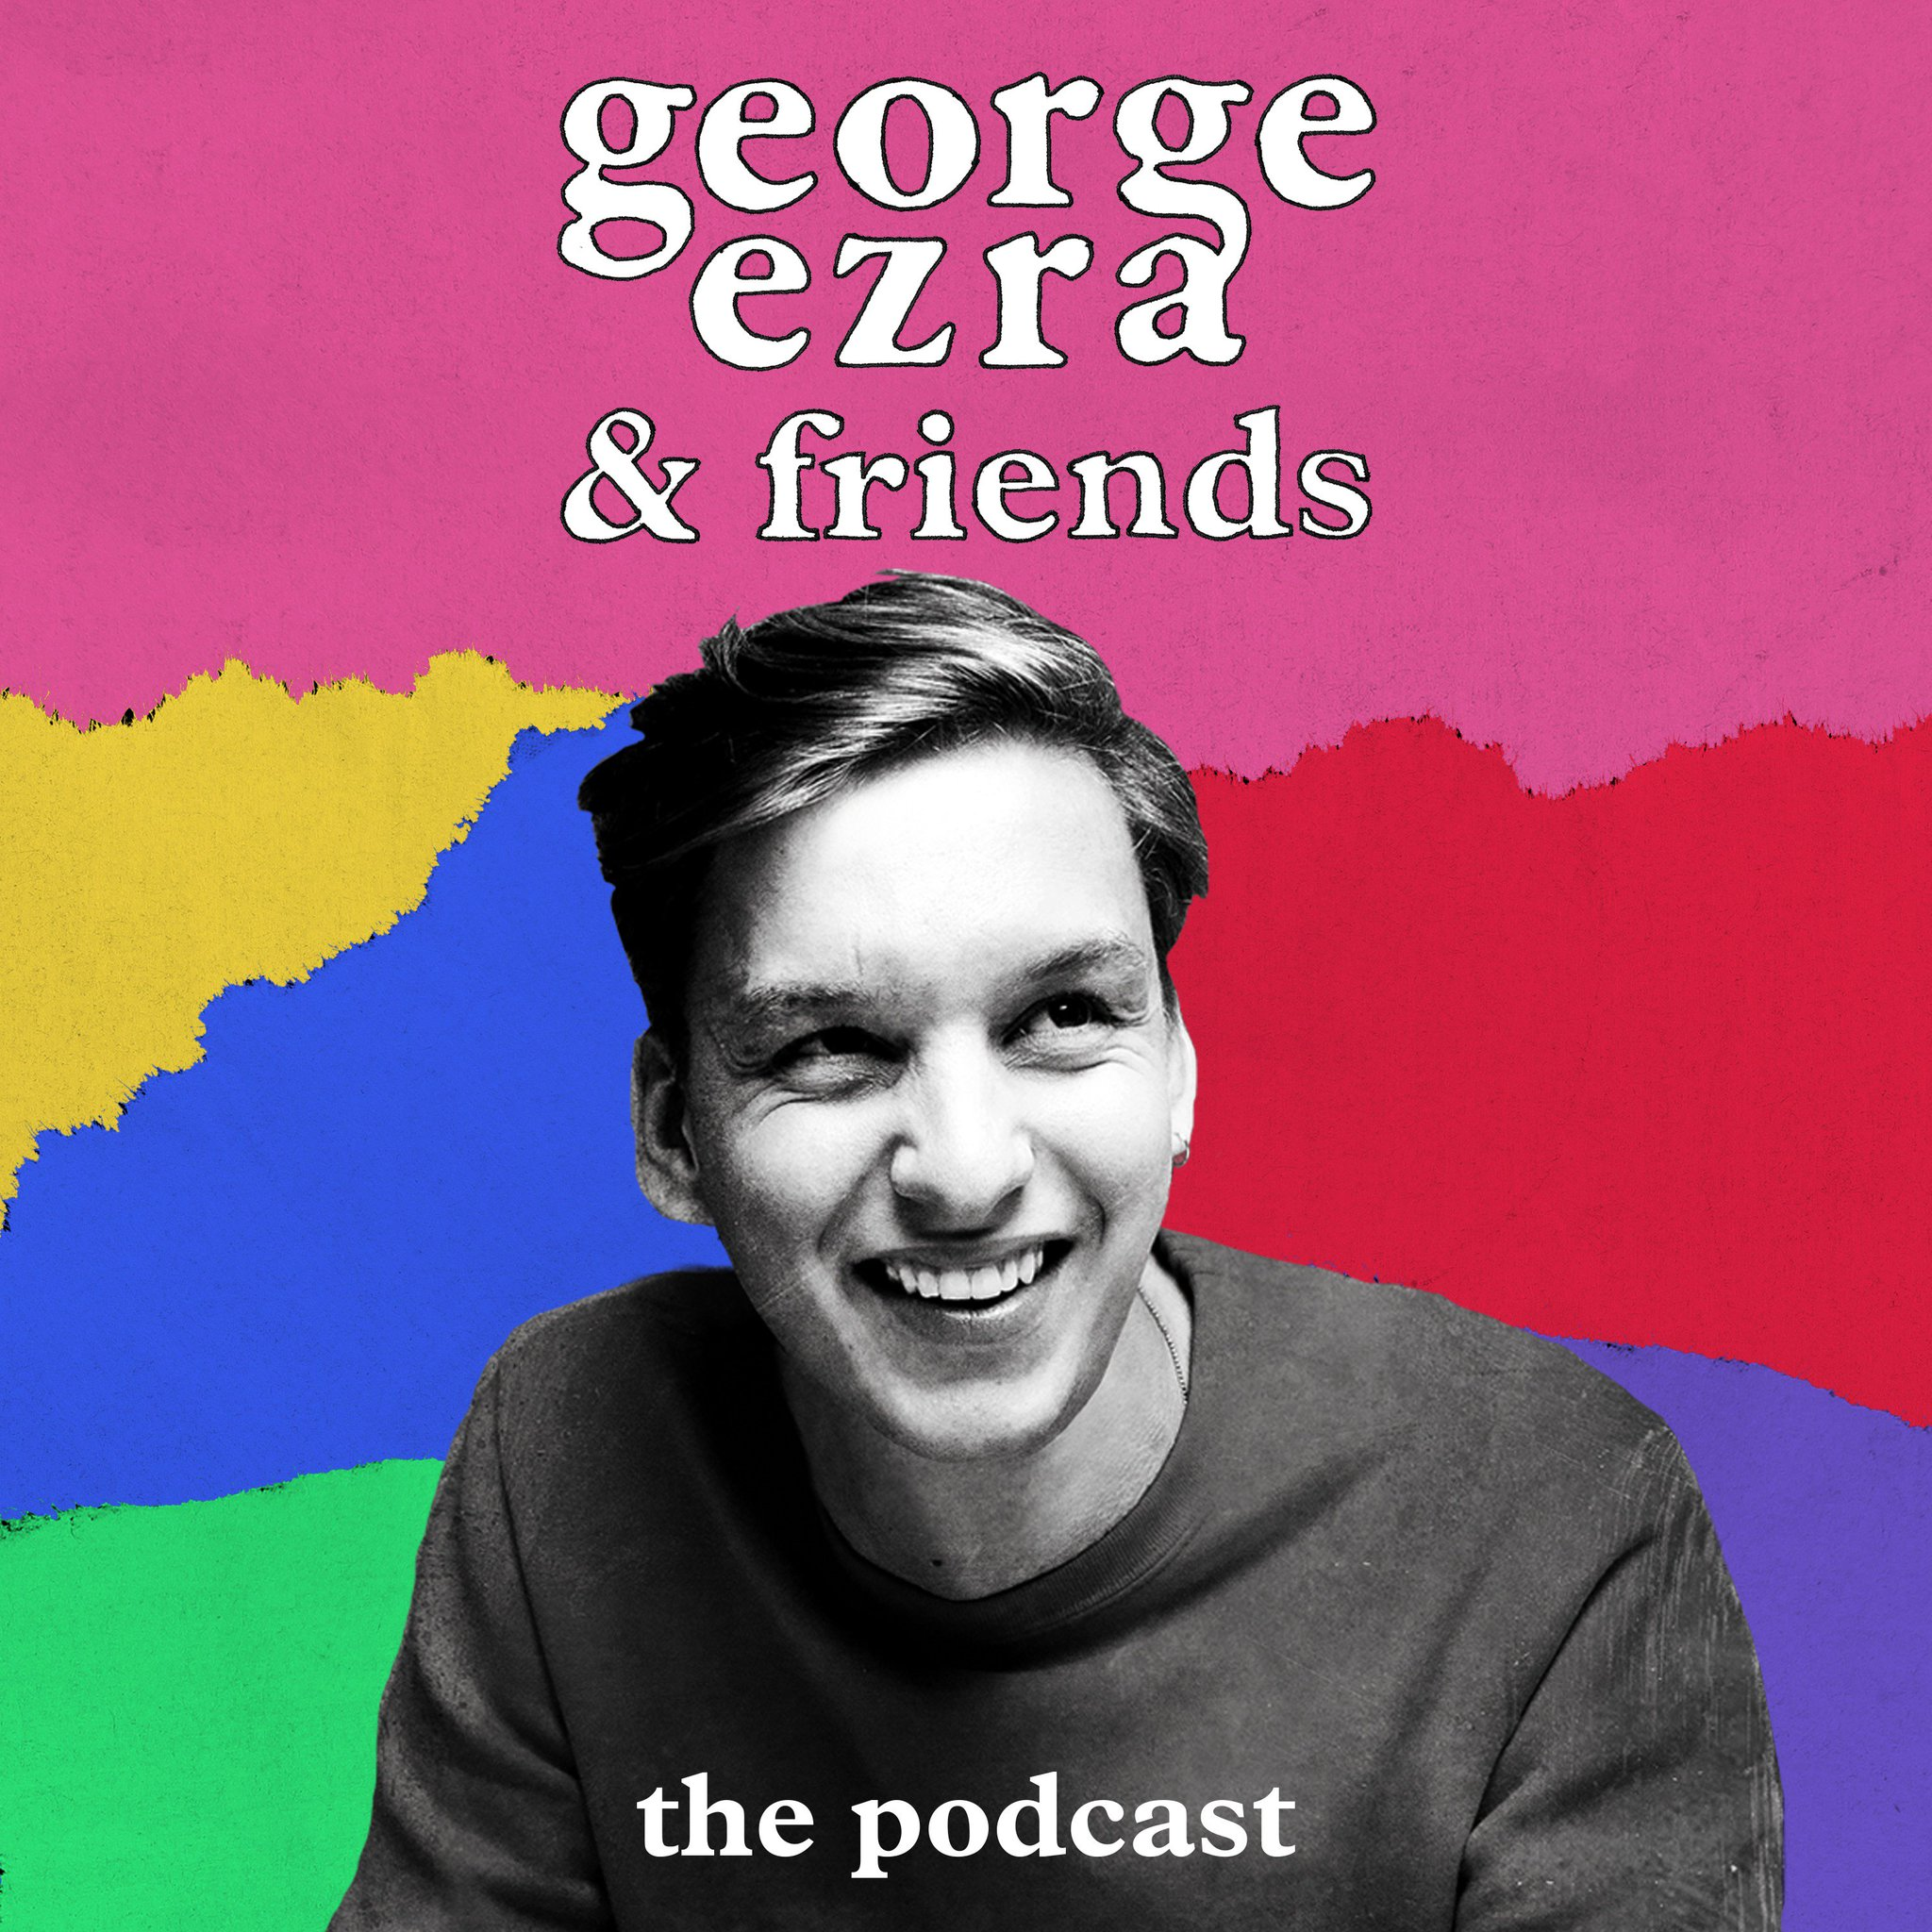 Had a great time talking music with my mate @george_ezra , hope you enjoy https://t.co/r4ivegnRbM https://t.co/IeOQHOE3uN